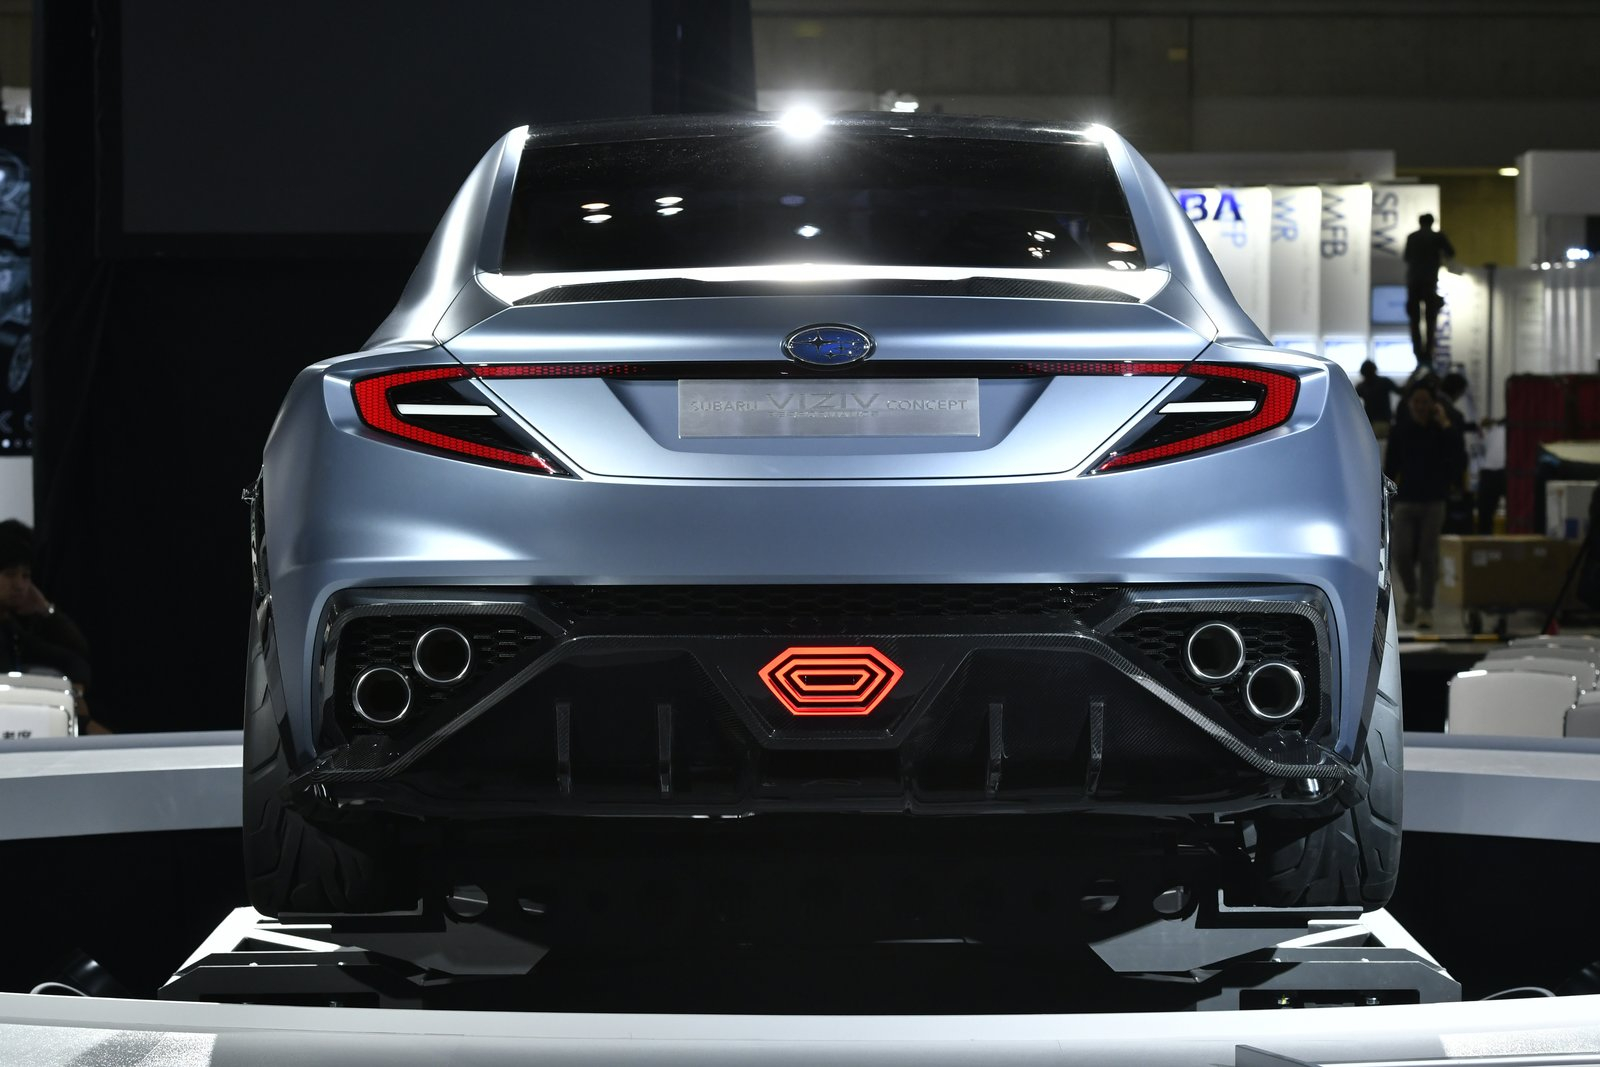 36 Elegant Subaru Redesign 2020 - 2022 Subaru Brz Special Edition Premier Specs, Color Options, Rumor